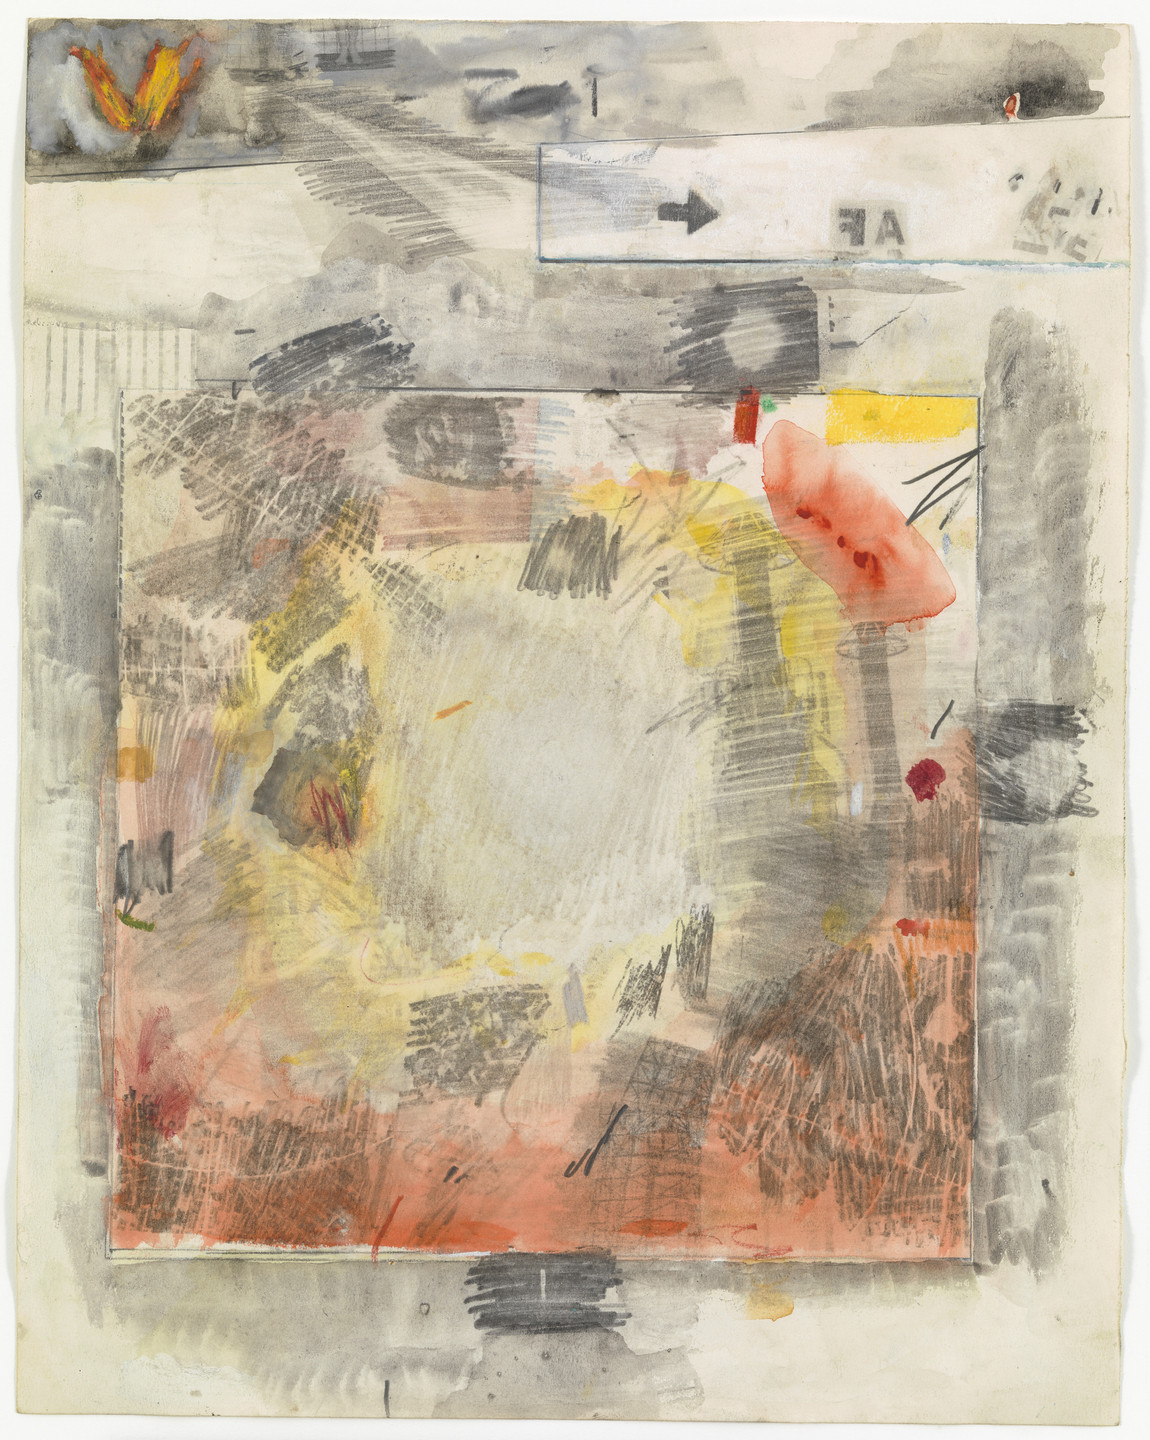 Robert Rauschenberg. Canto VIII: Circle Five, The Styx, The Wrathful; Circle Six, Dis, Capital of Hell, The Fallen Angels from the series Thirty-Four Illustrations for Dante's Inferno. (1959-60)